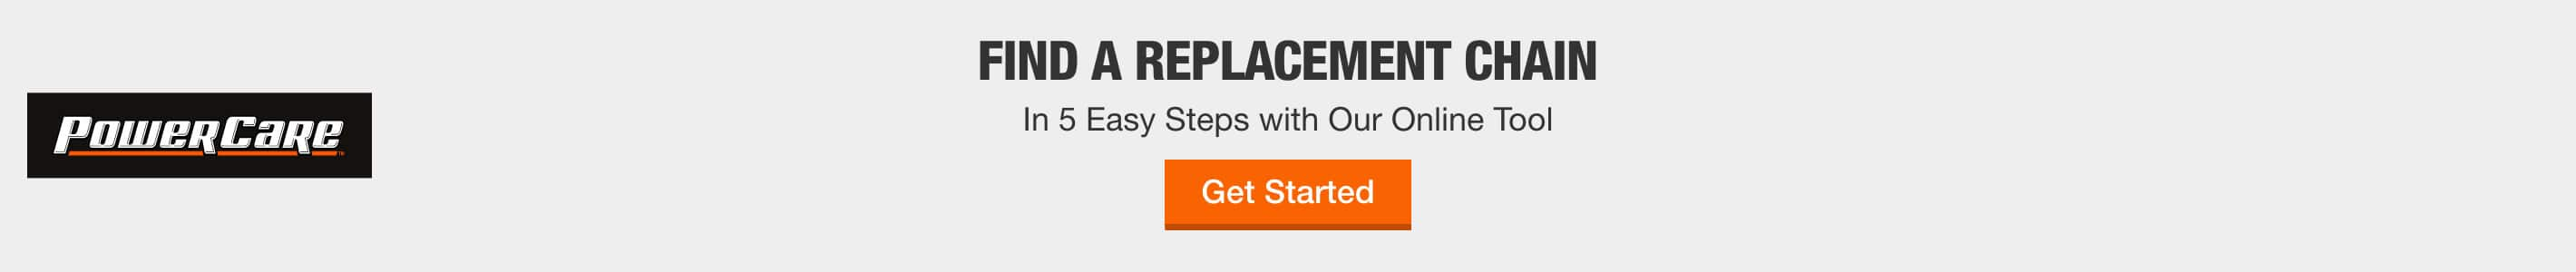 FIND A REPLACEMENT CHAIN In 5 Easy Steps with Our Online Tool Get Started